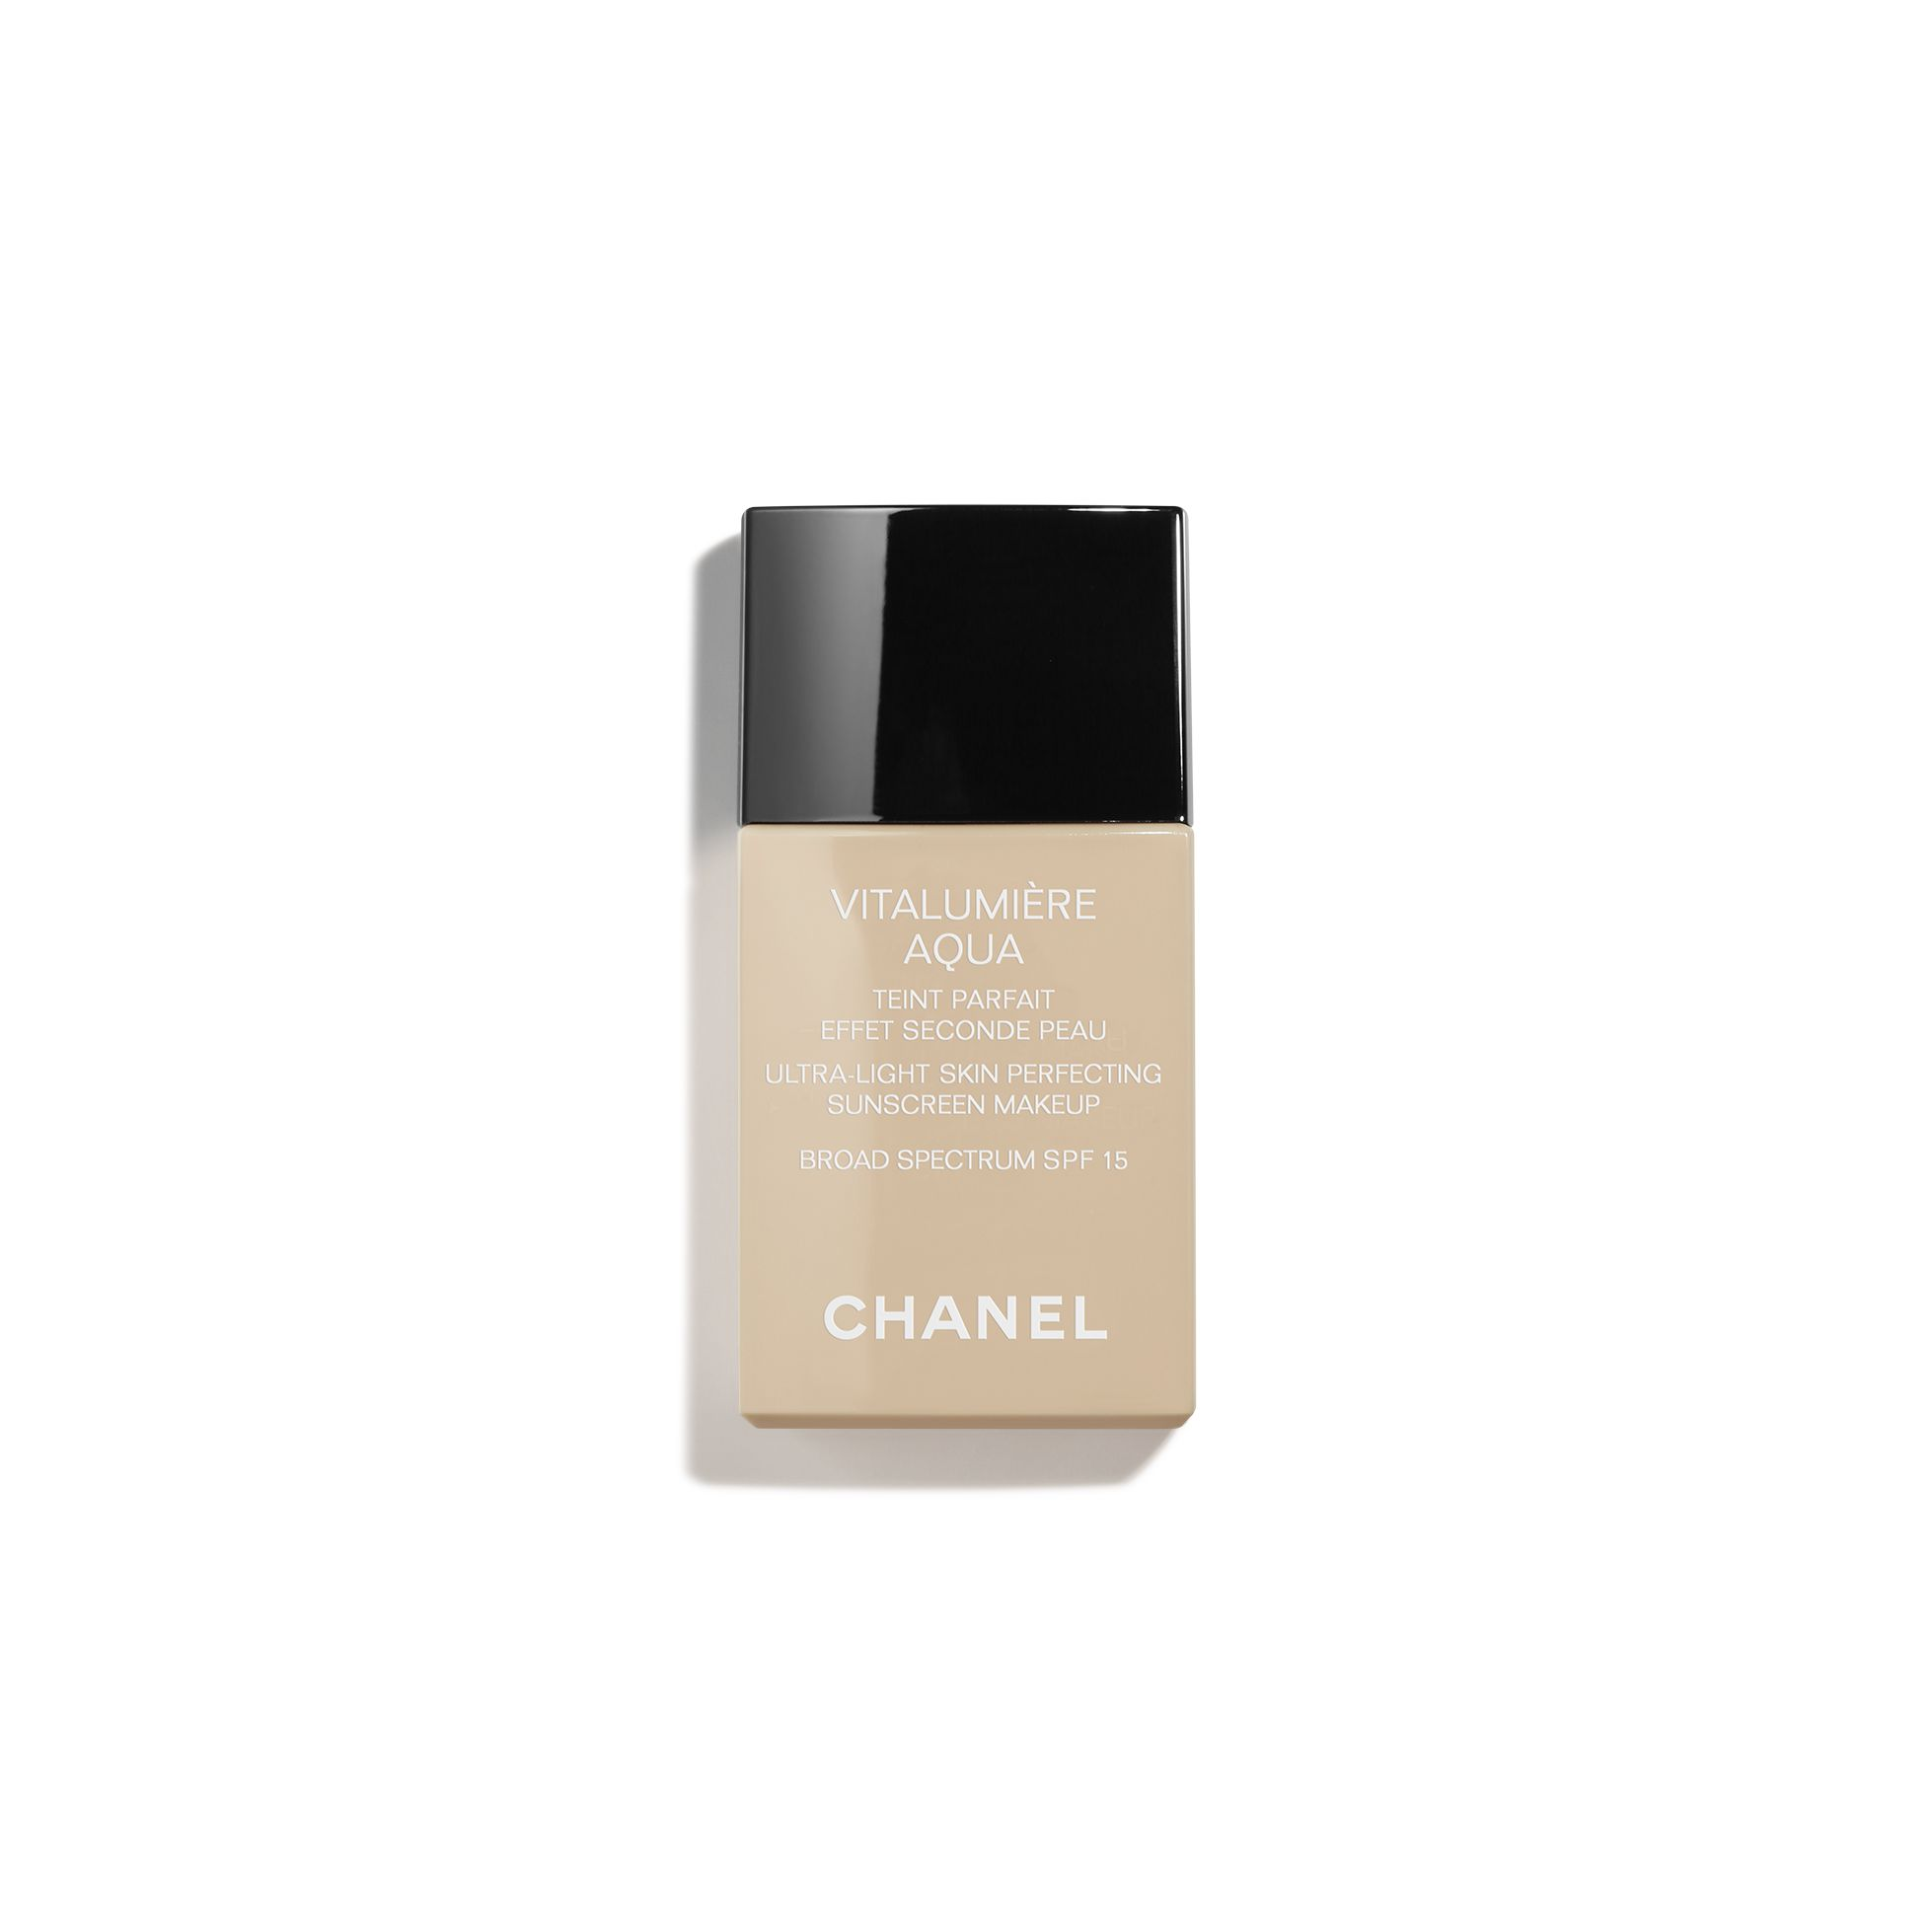 Foundation Match Up Find Your Foundation Makeup Chanel